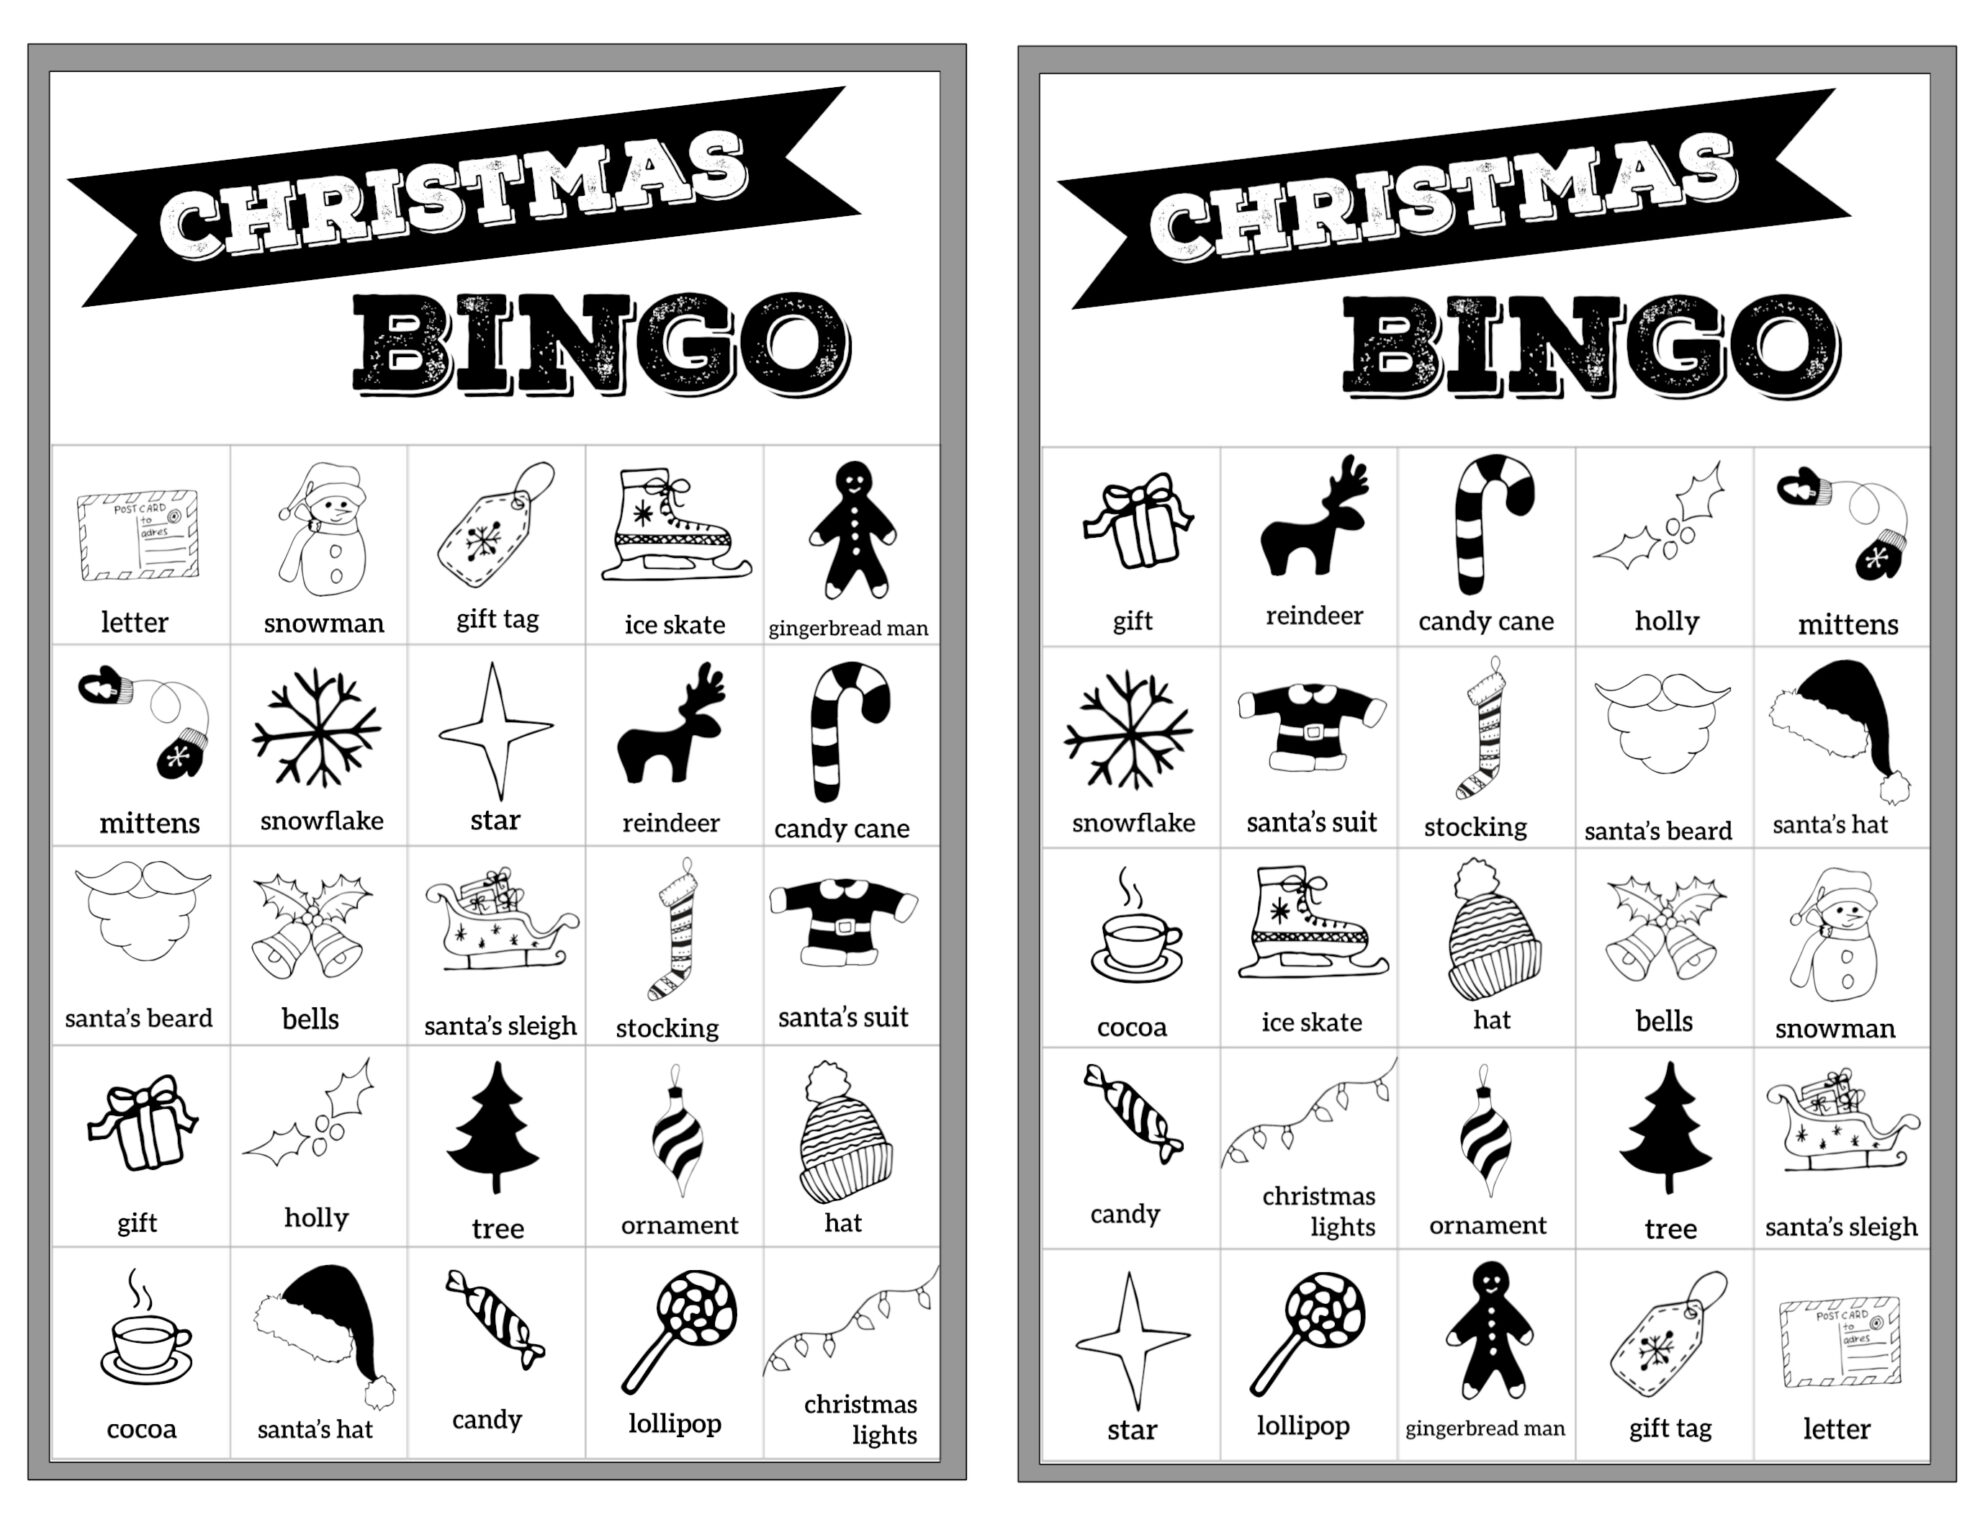 graphic relating to Christmas Bingo Free Printable referred to as Totally free Xmas Bingo Printable Playing cards - Paper Path Layout